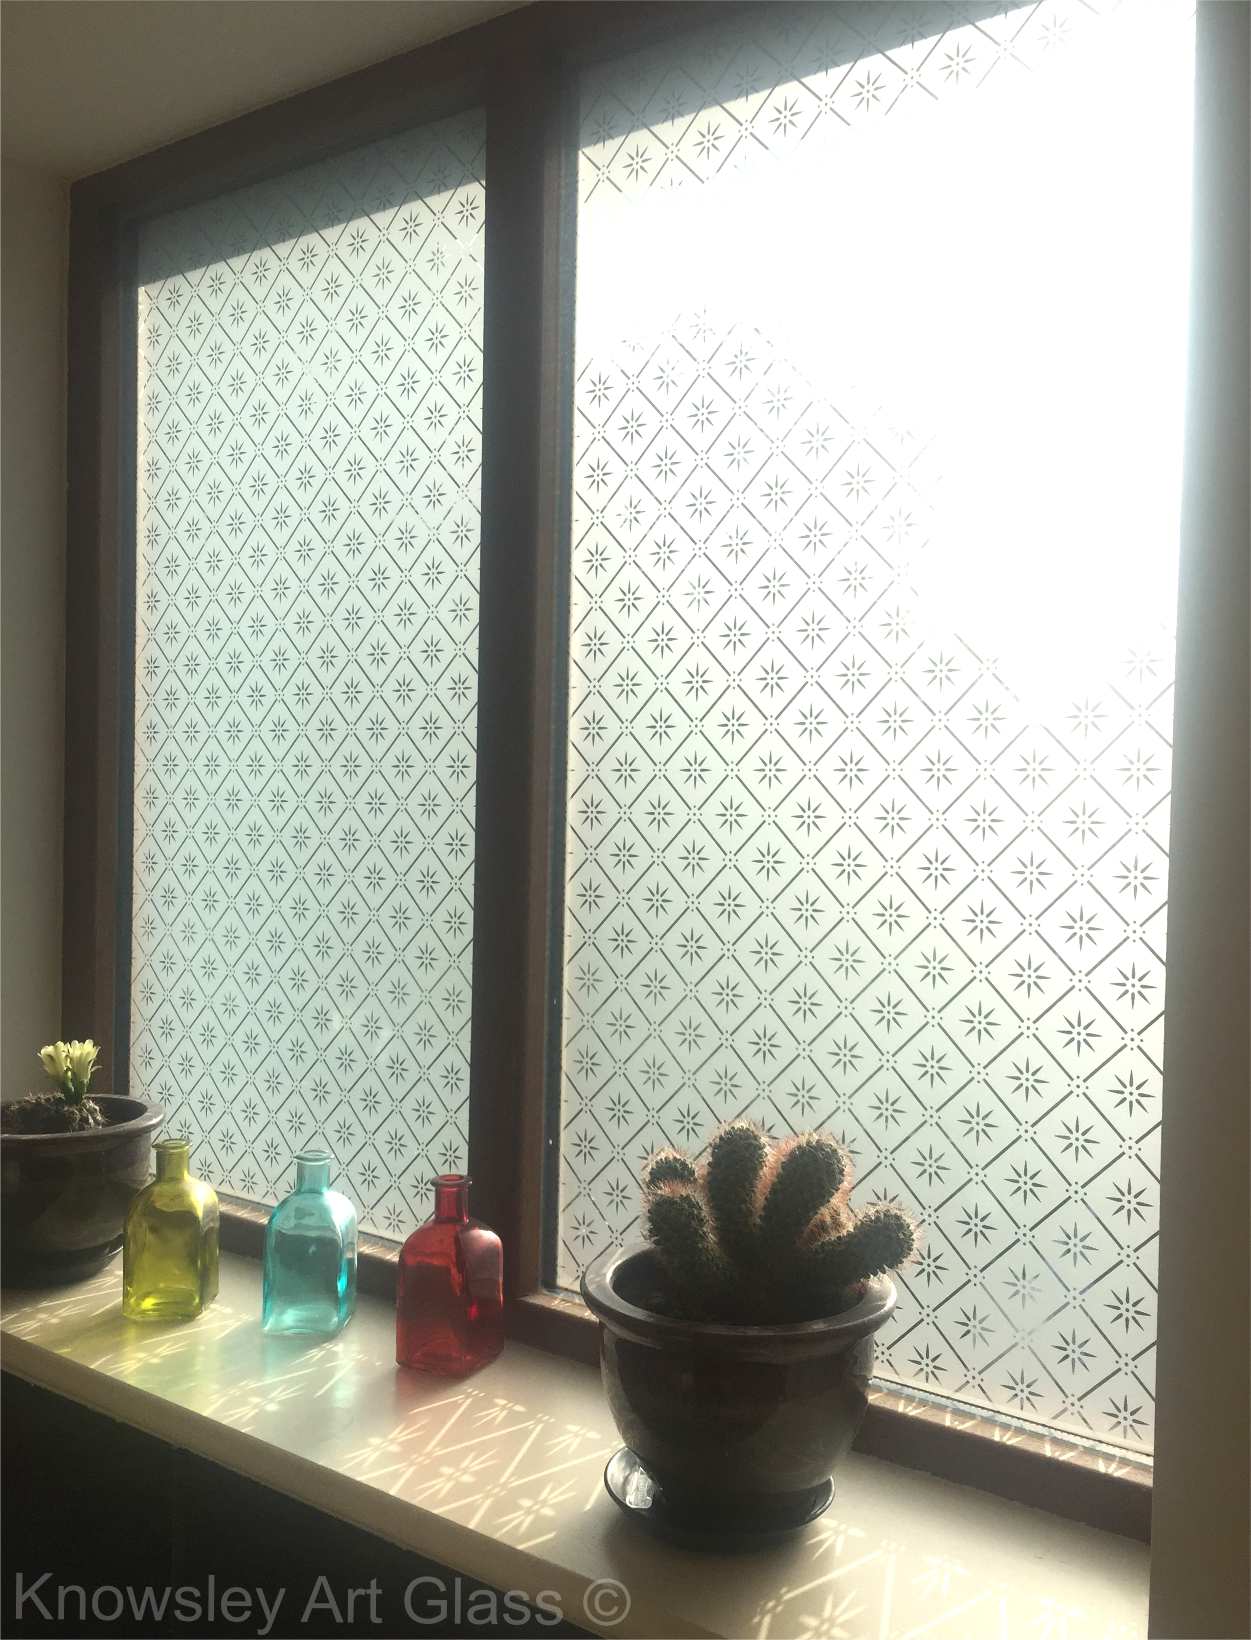 etched glass double glazed units